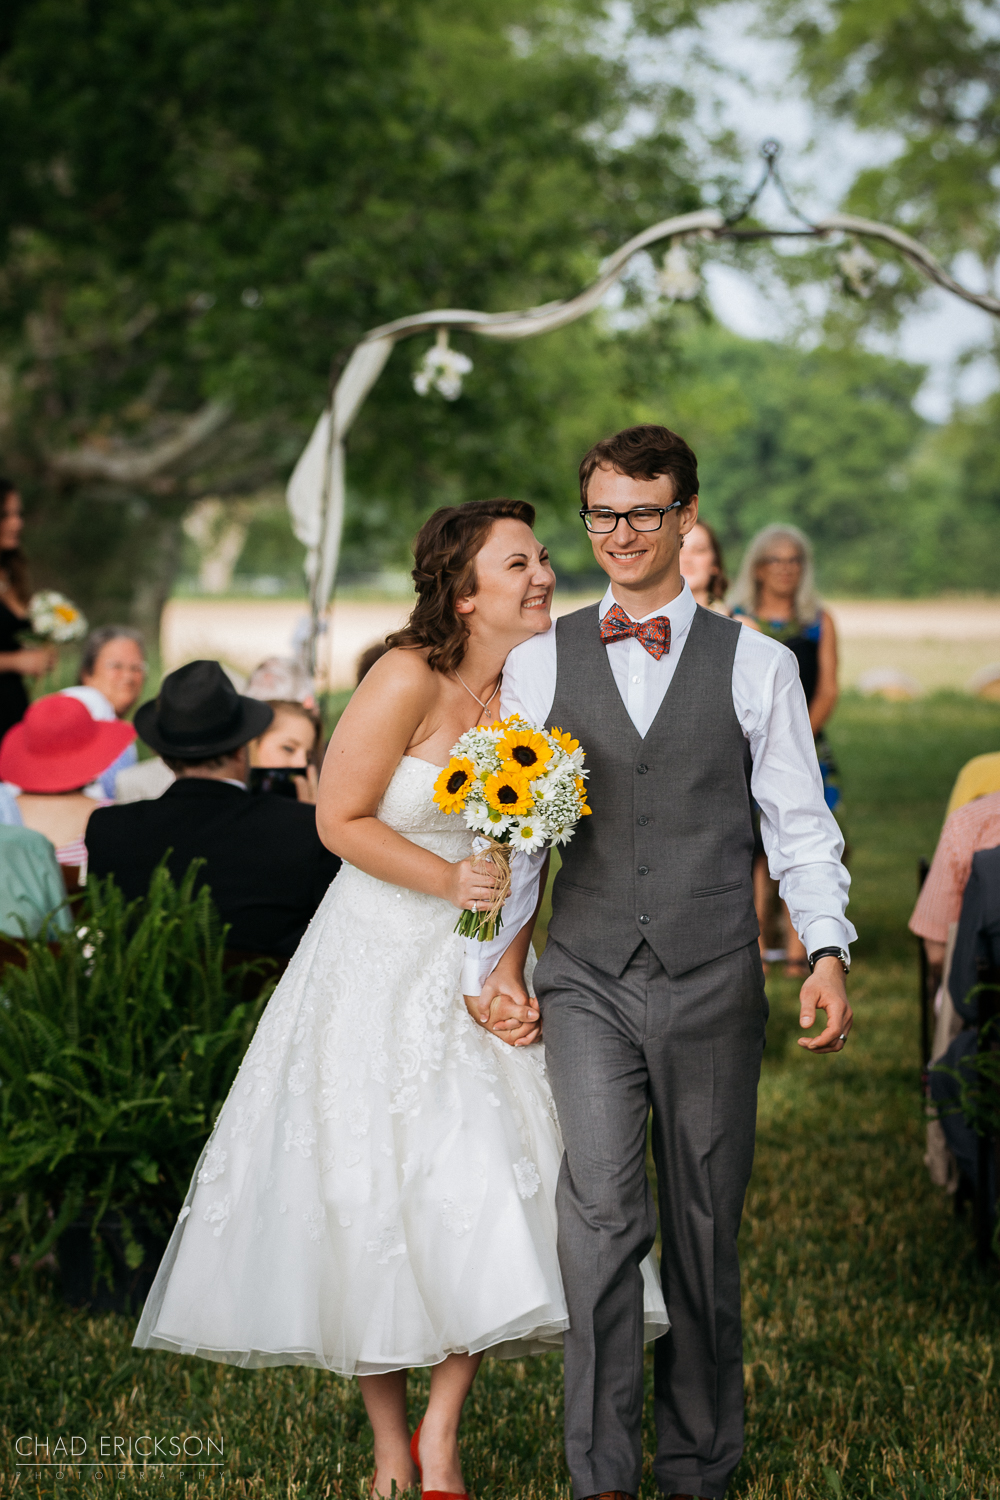 Walking out after ceremony